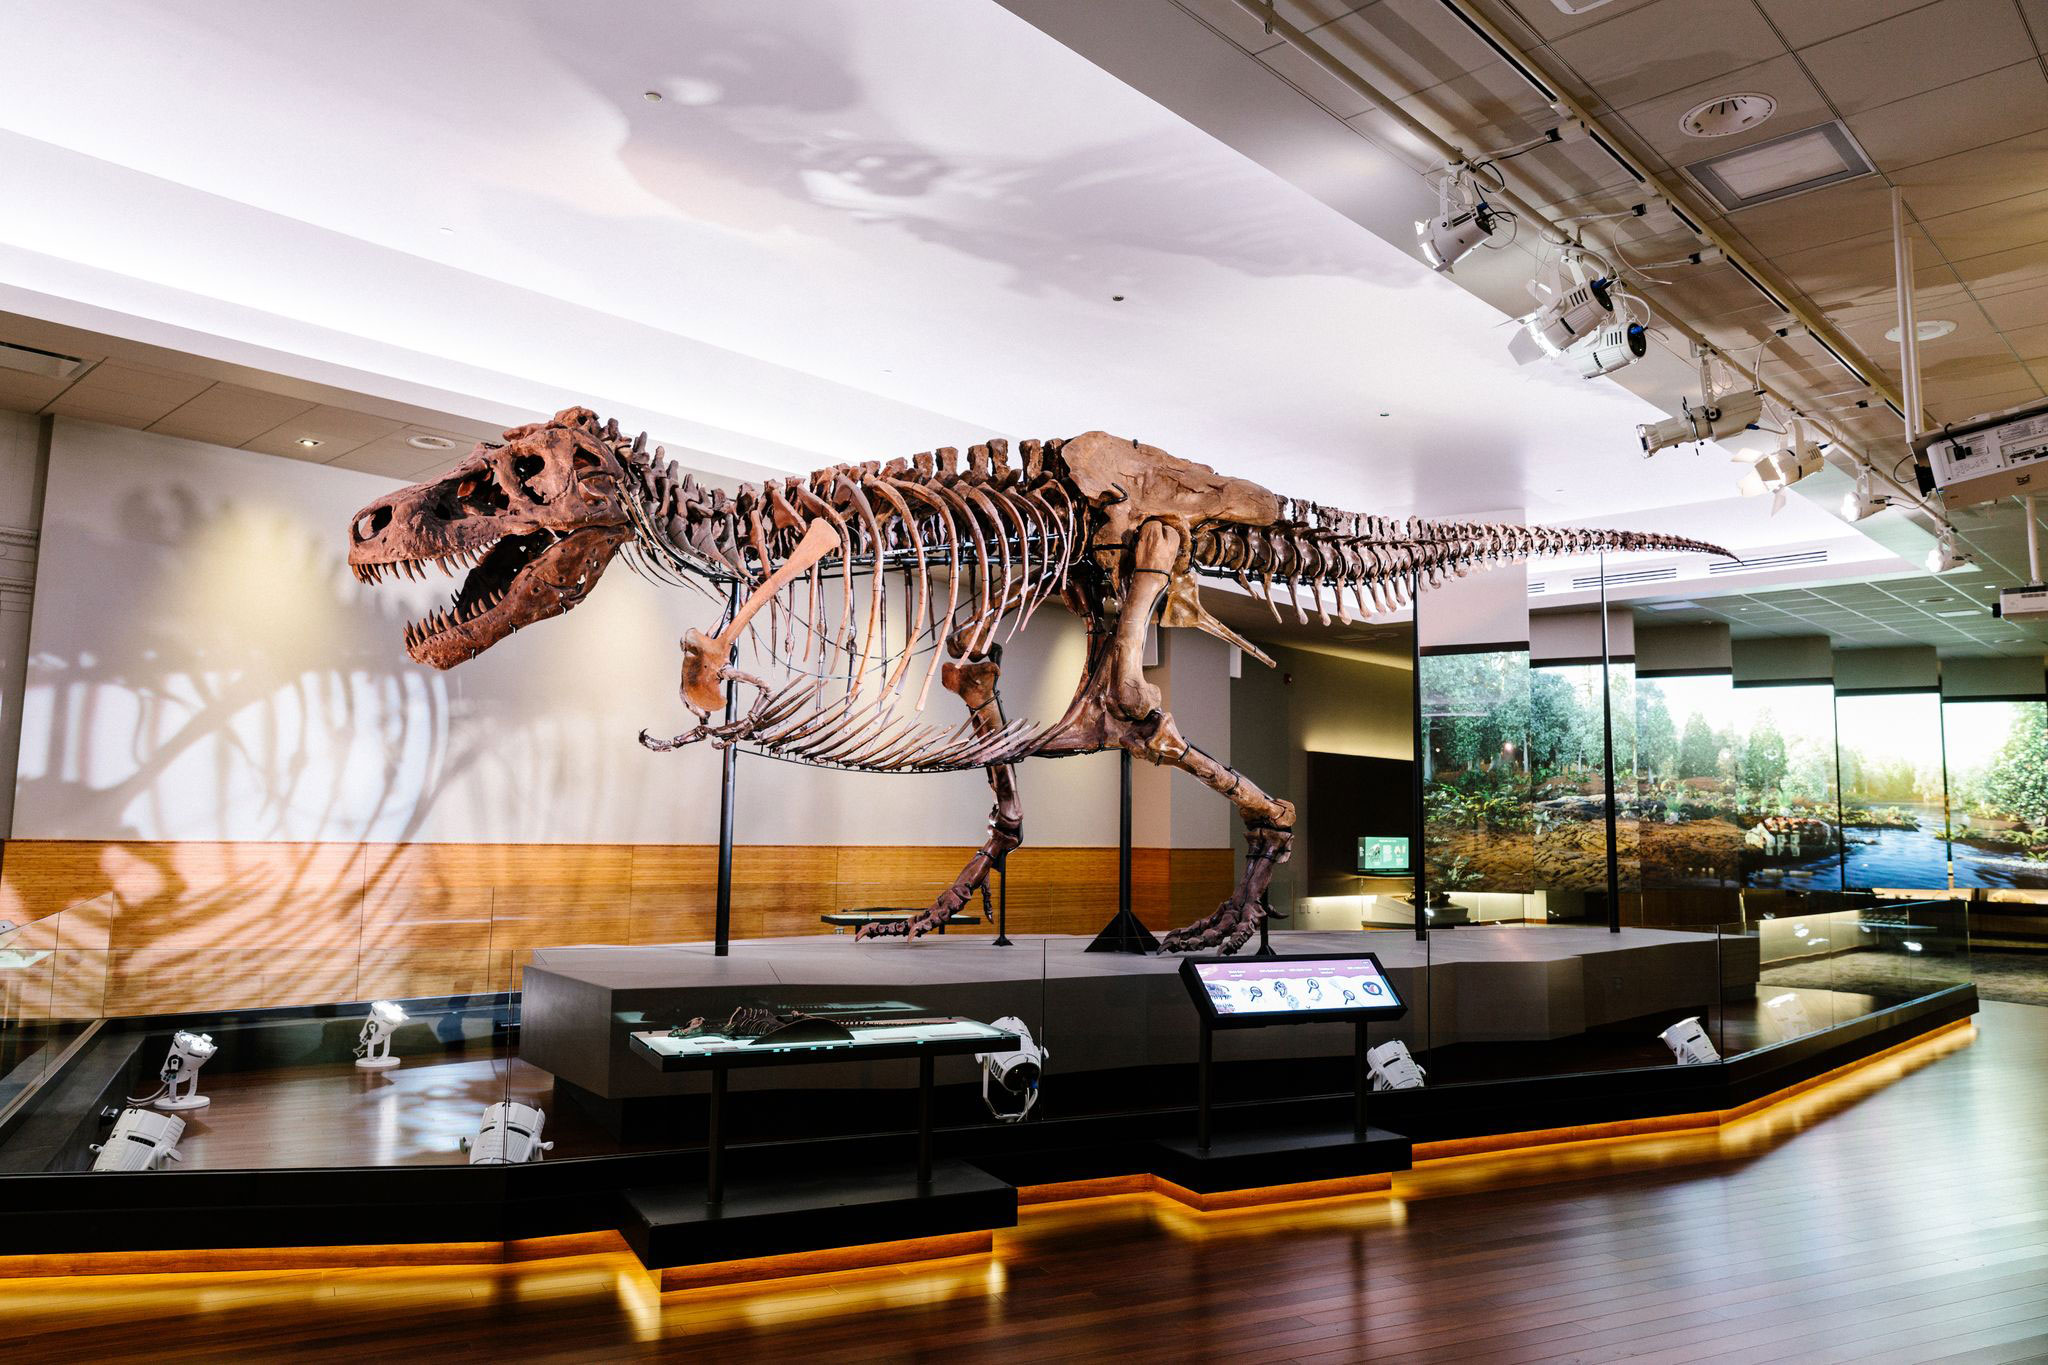 T. rex had a teenage growth spurt — but not all dinos did